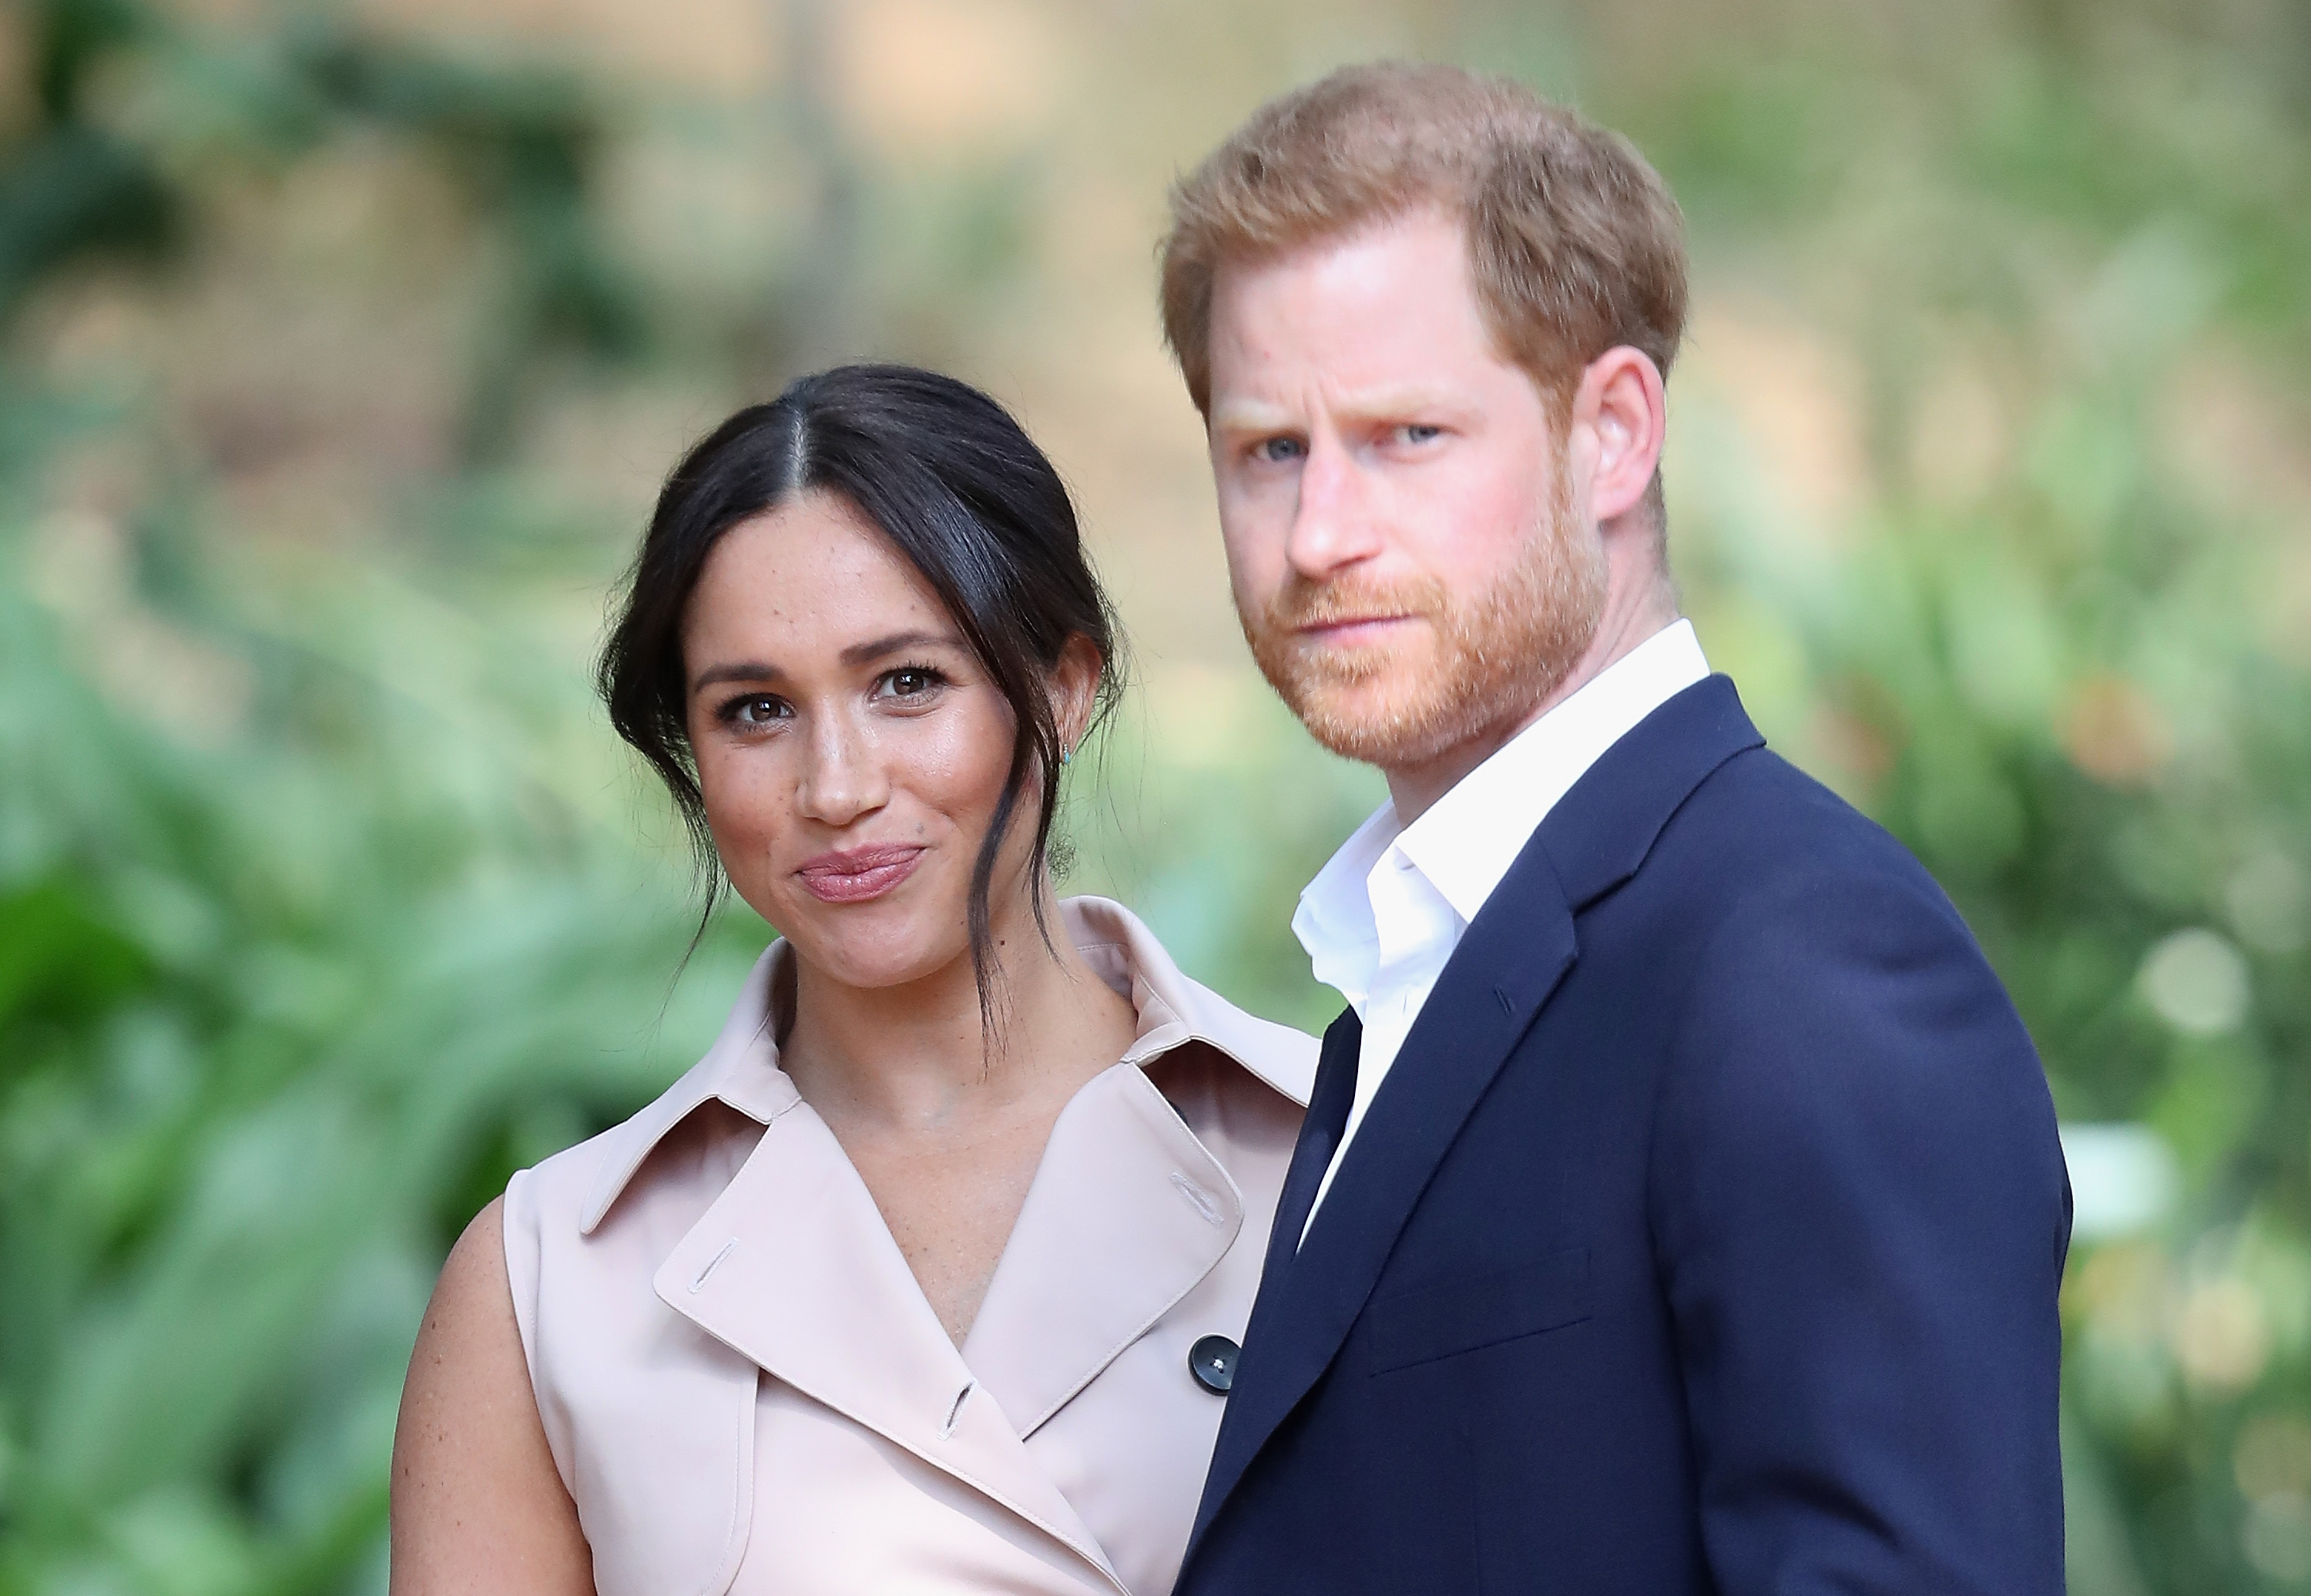 Prince Harry, Duke of Sussex and Meghan, Duchess of Sussex attend a reception on Oct. 2, 2019 in Johannesburg, South Africa.